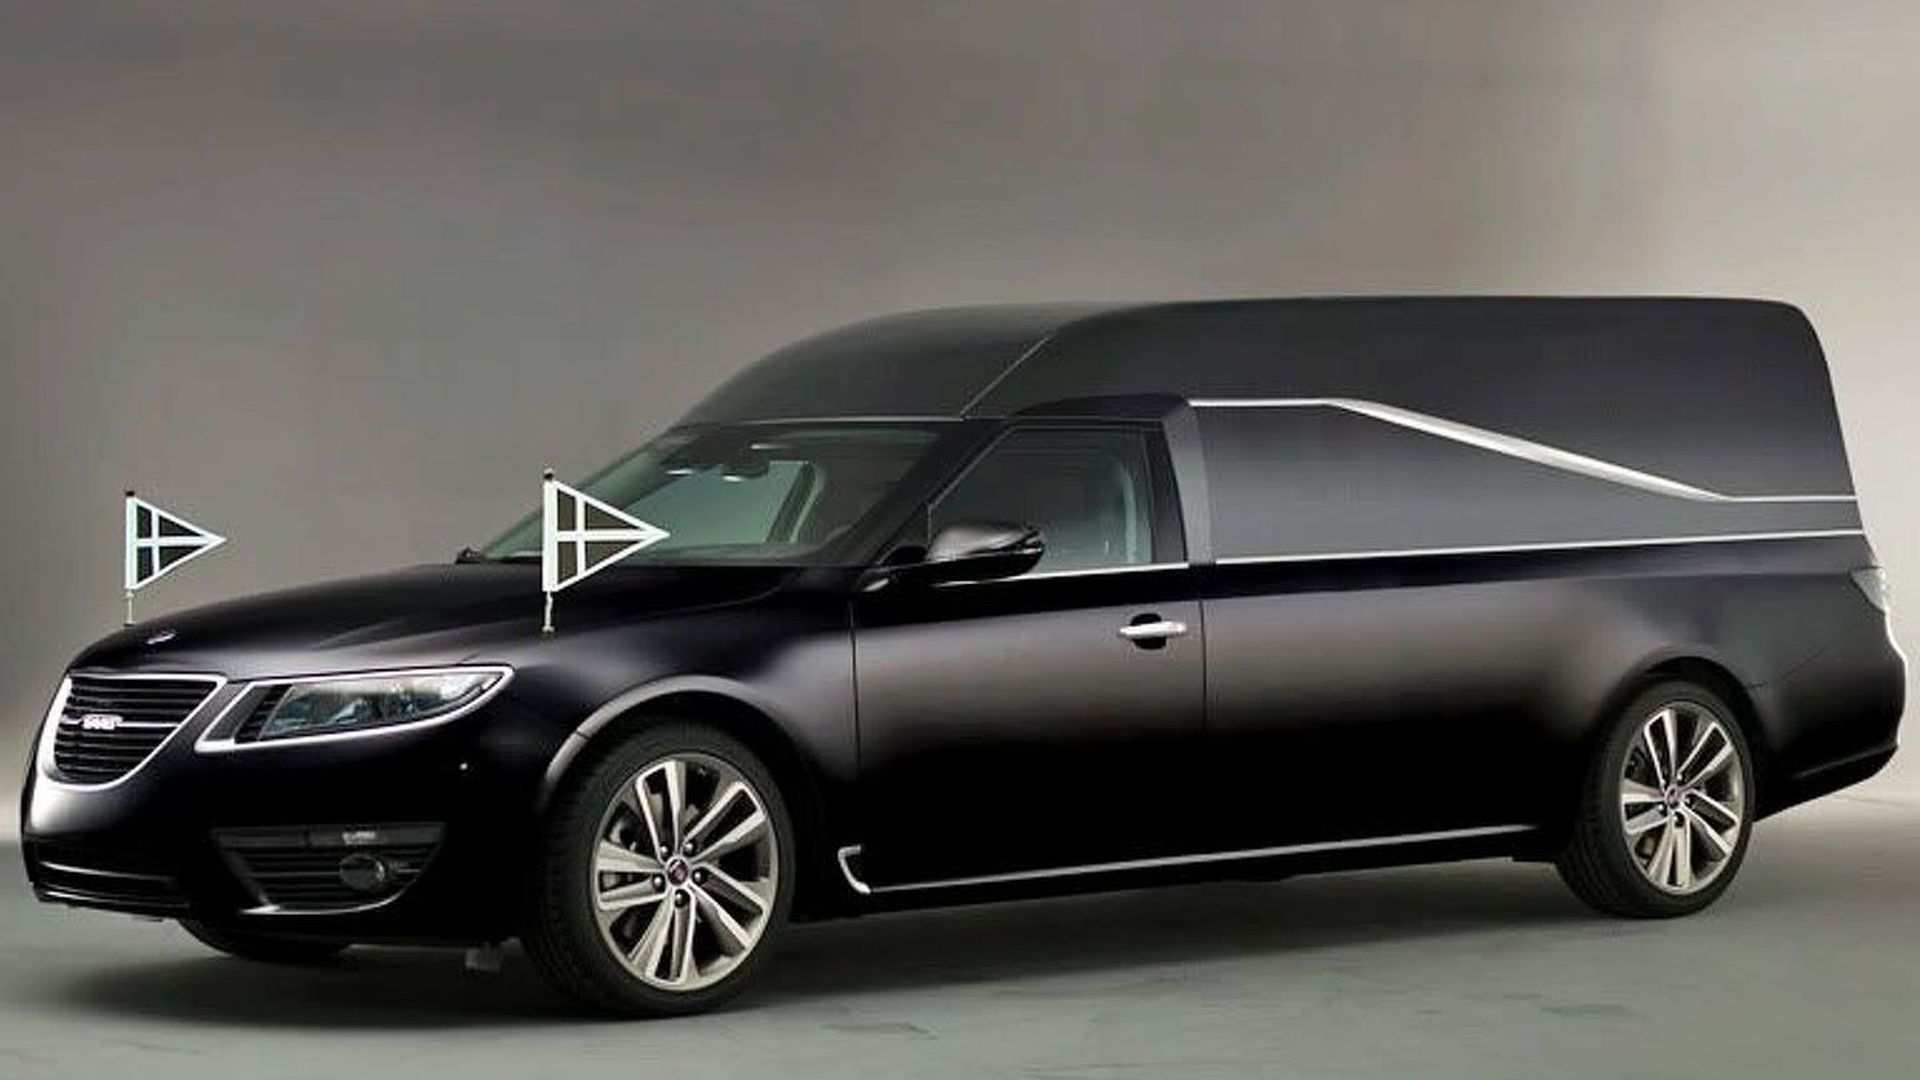 55 The Best 2020 Saab 9 5 Picture